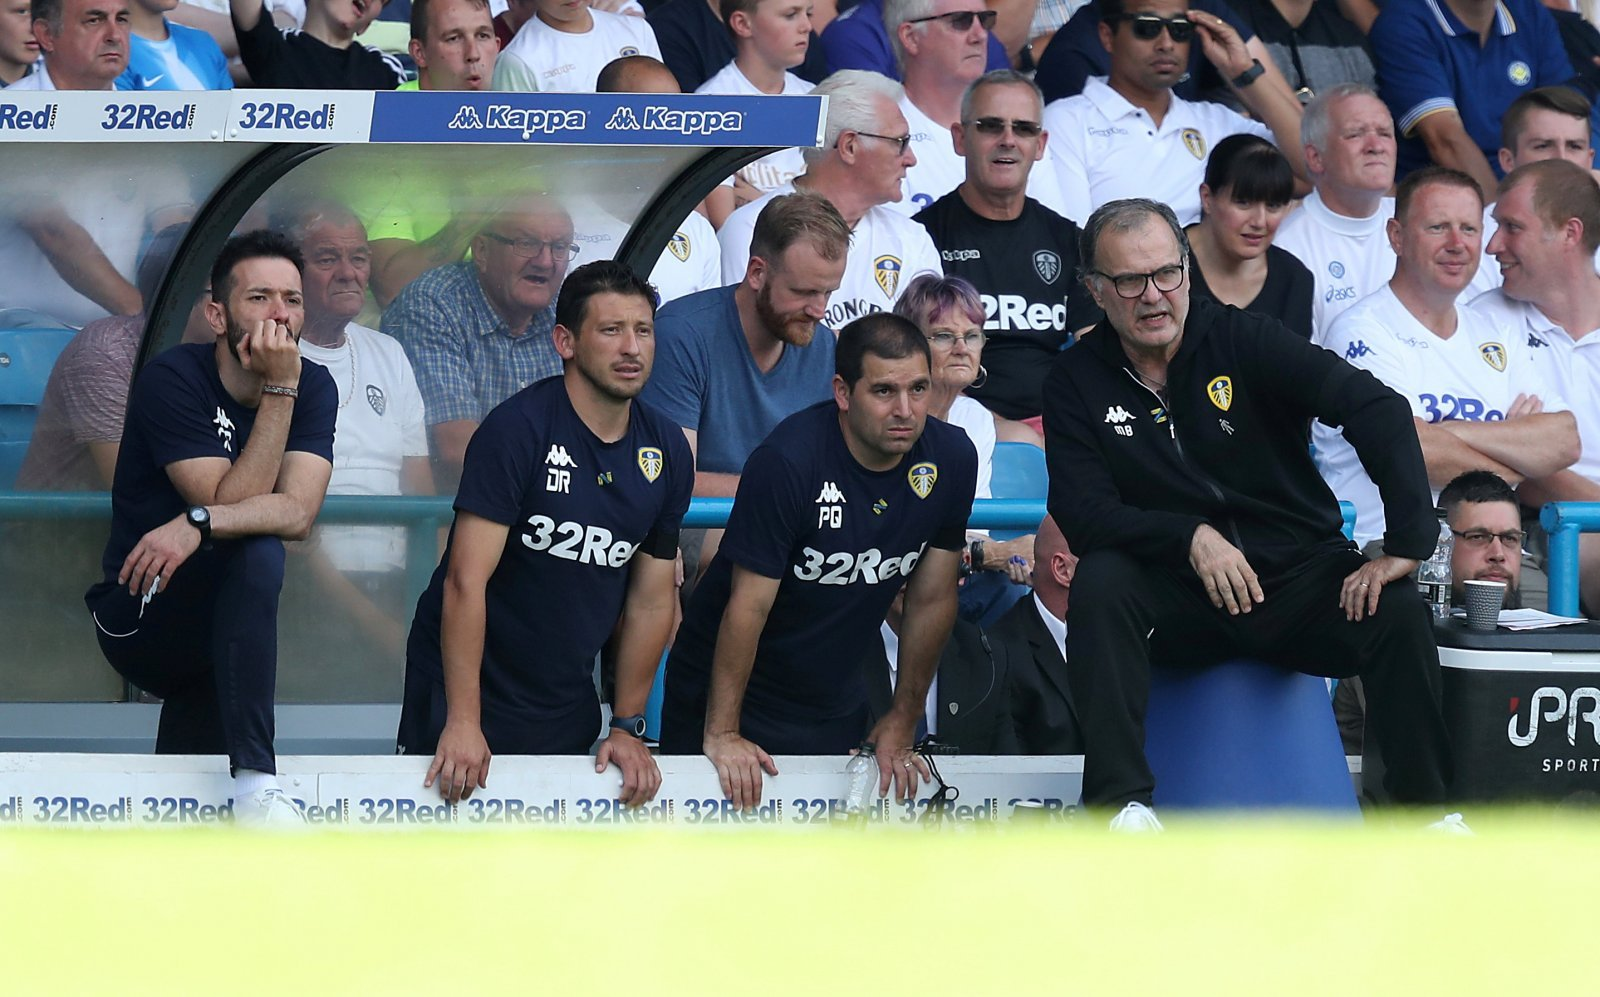 Jamie Shackleton is going to be a vital cog in Bielsa's Leeds machine